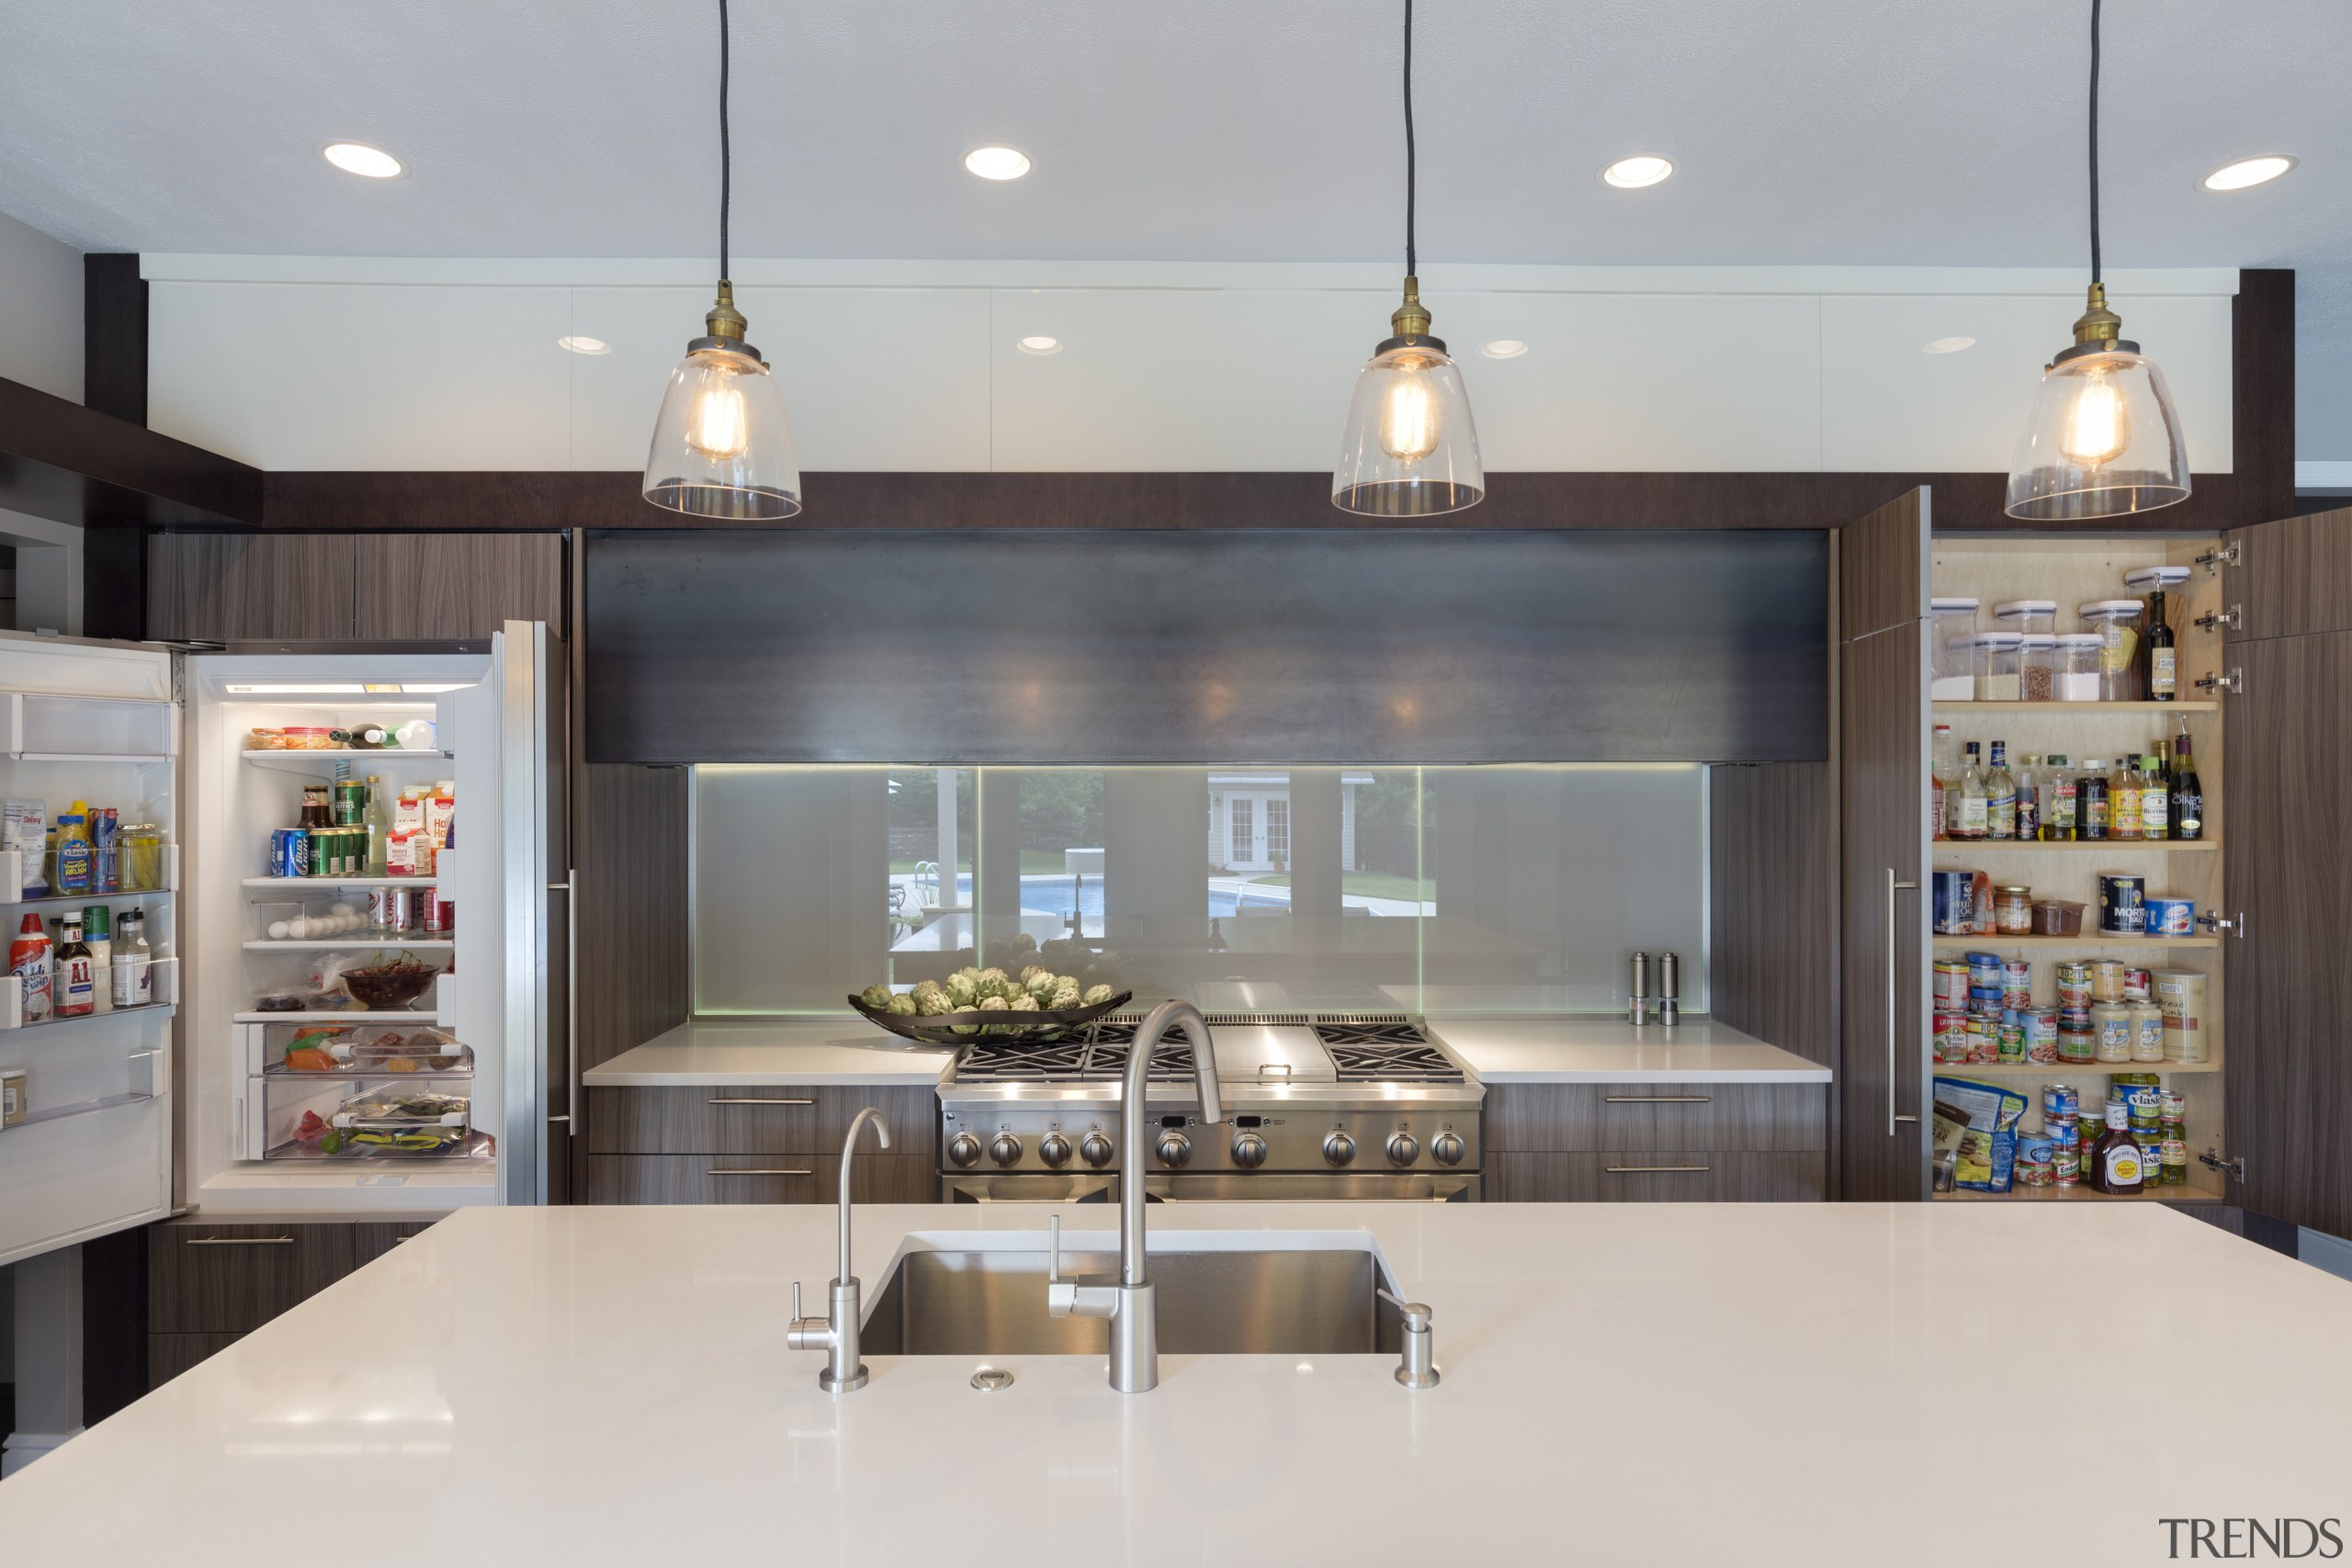 With integrated refrigeration to the left and a countertop, interior design, kitchen, gray